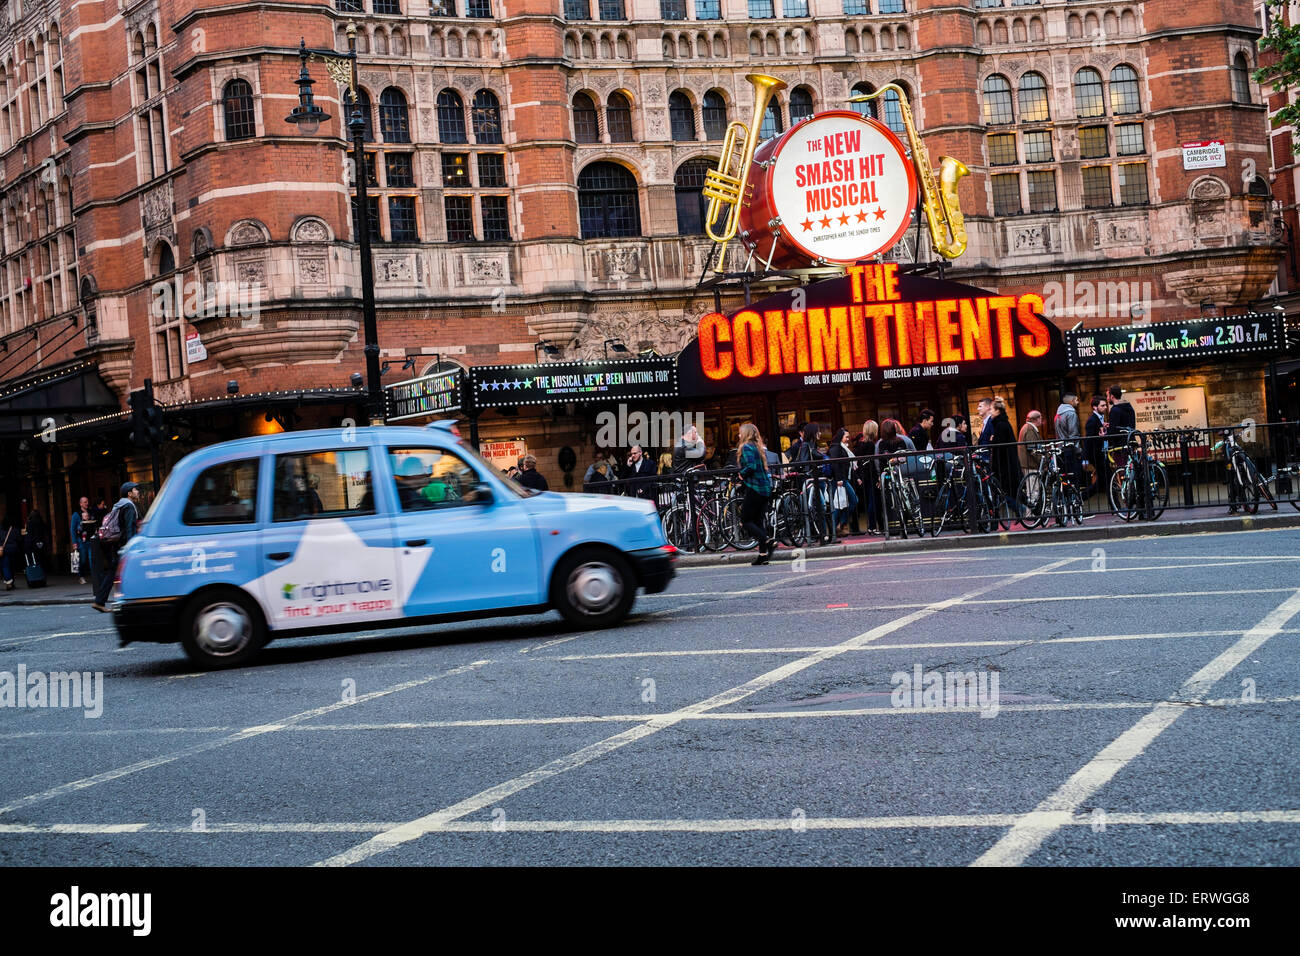 Cambridge Circus, London, United Kingdom - Stock Image